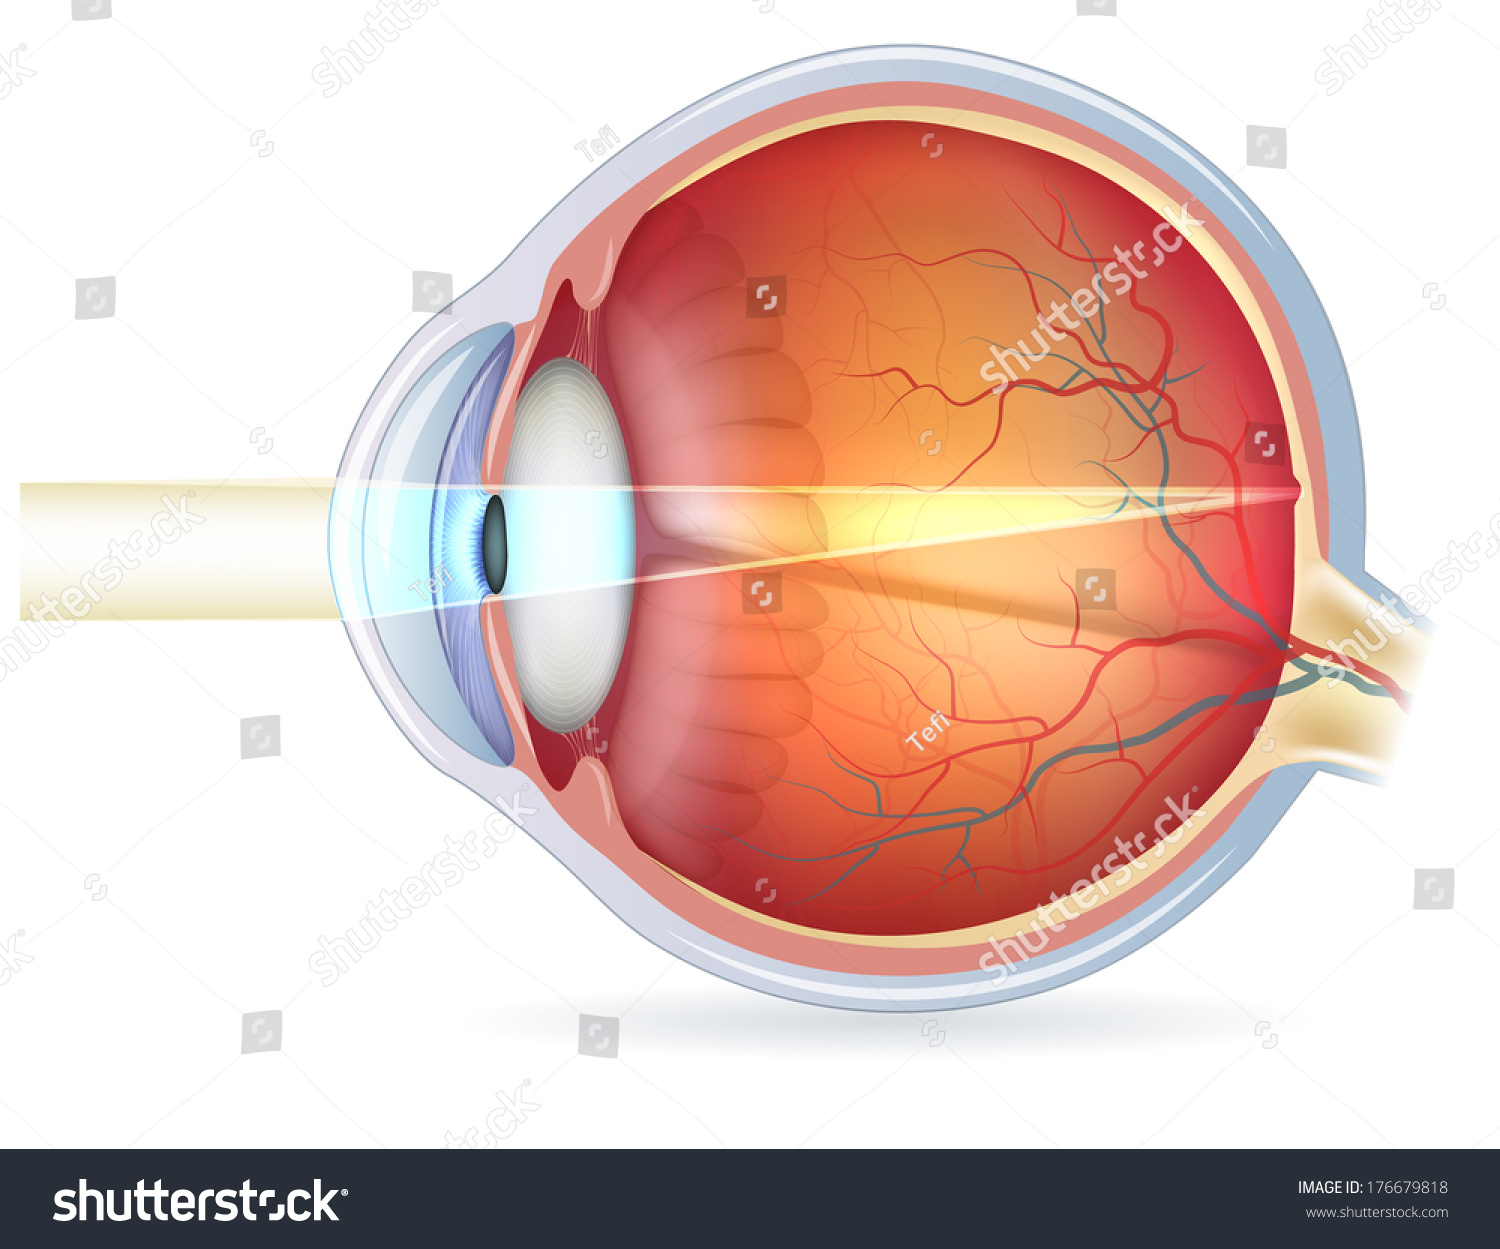 Anatomy Eye Cross Section View Fundus Stock Vector 176679818 ...